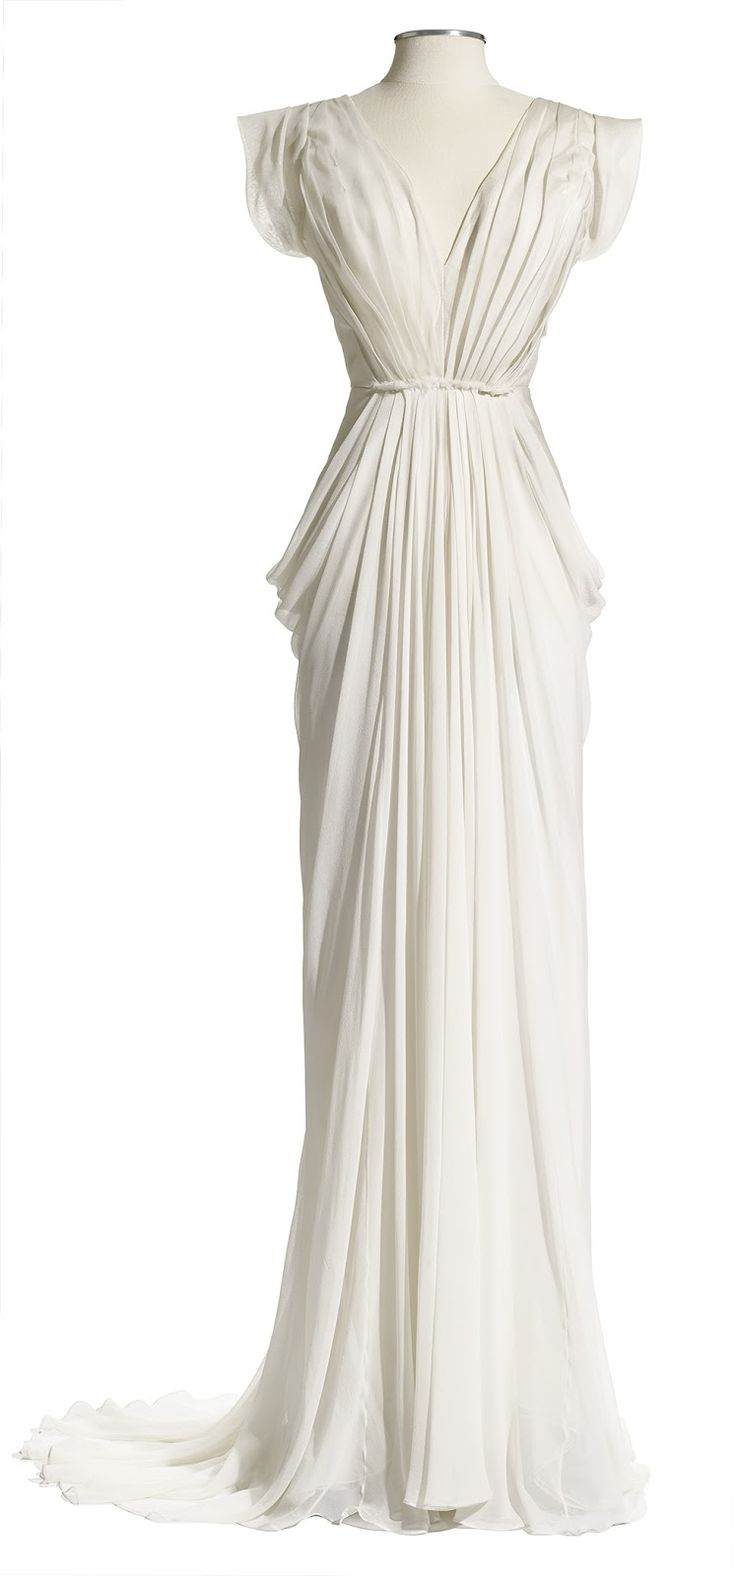 j mendel bridal j mendel wedding dress Find this Pin and more on Gowns Sheath